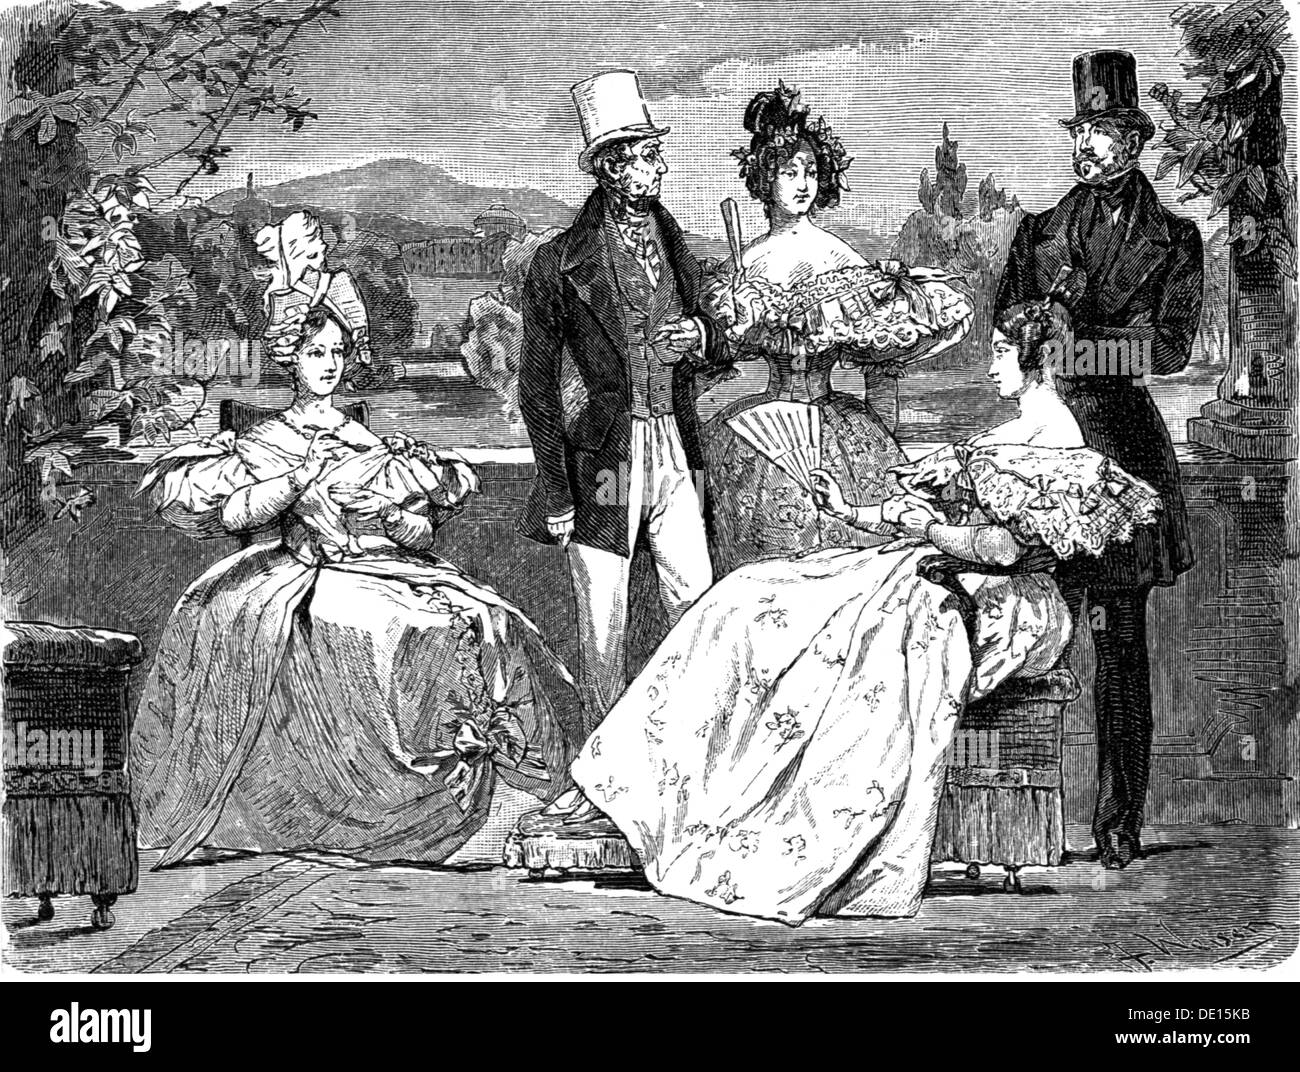 fashion, 19th century, women in dresses with decollete, wood engraving by Weise, fashion magazine, Vienna, circa 1835, Additional-Rights-Clearences-NA - Stock Image